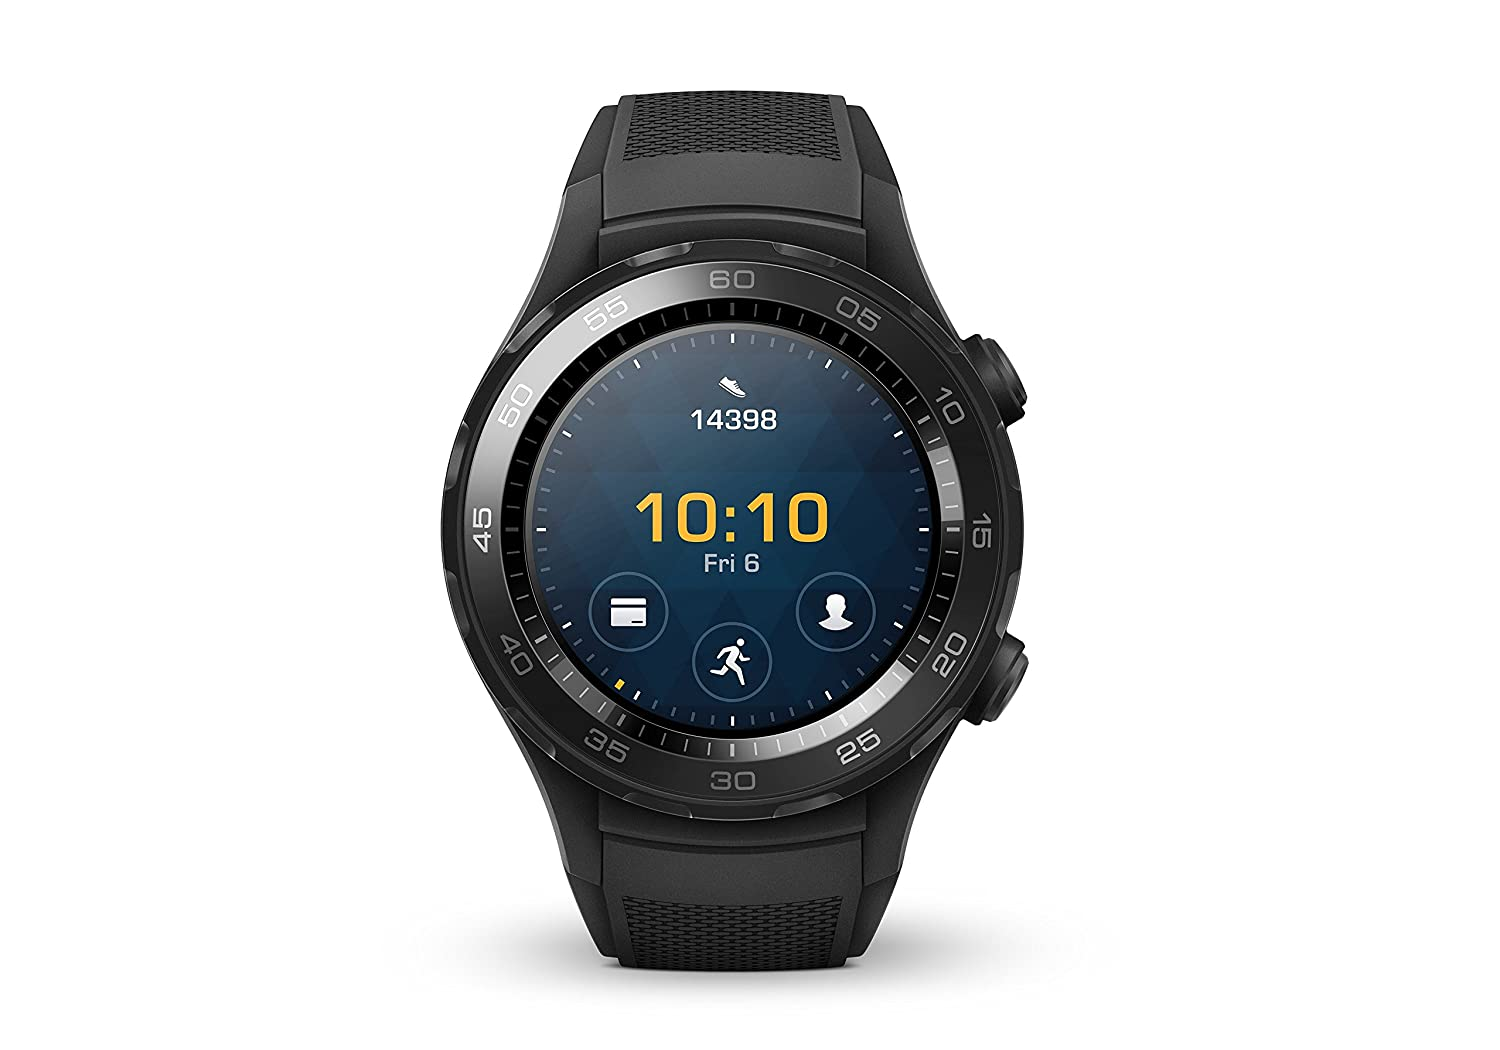 Huawei Watch 2 Smartwatch, 4 GB ROM, Android Wear, Bluetooth, Wifi, Monitoraggio della frequenza cardiaca, Nero (Carbon Black)